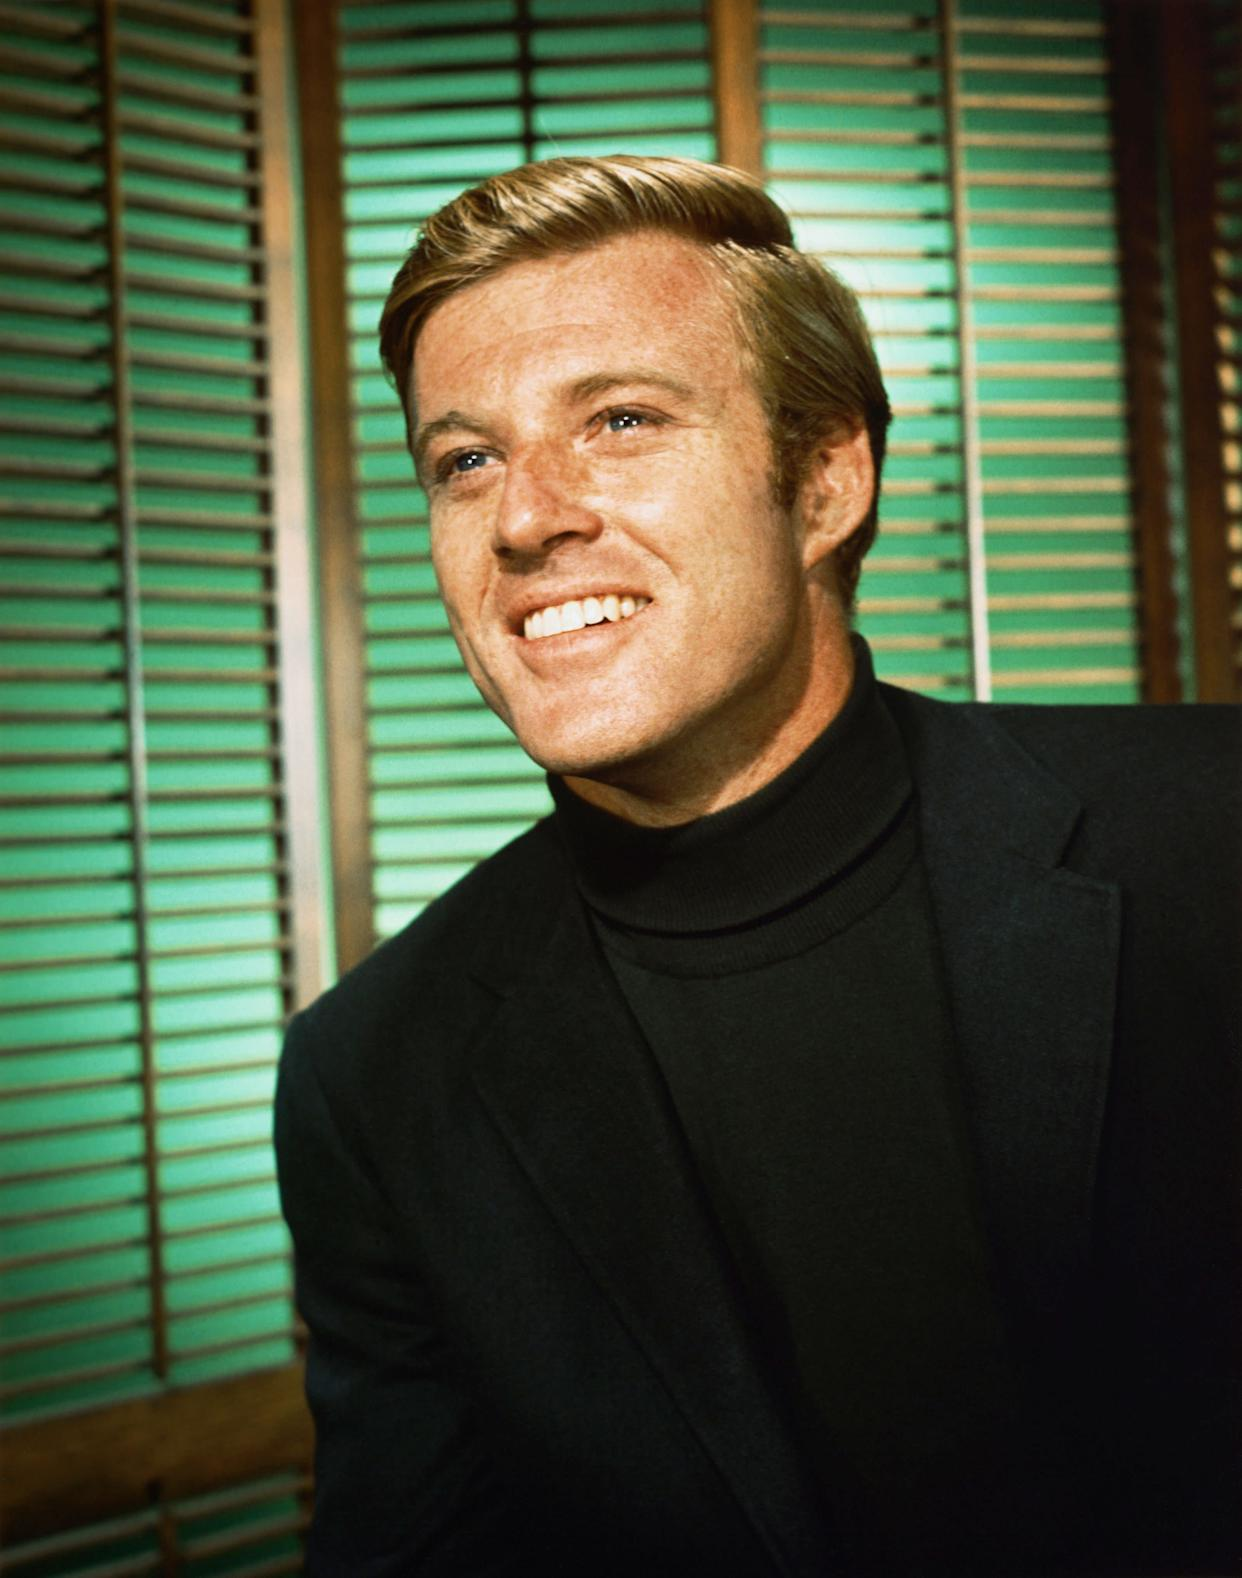 The actor smiling in a turtleneck, circa 1960.